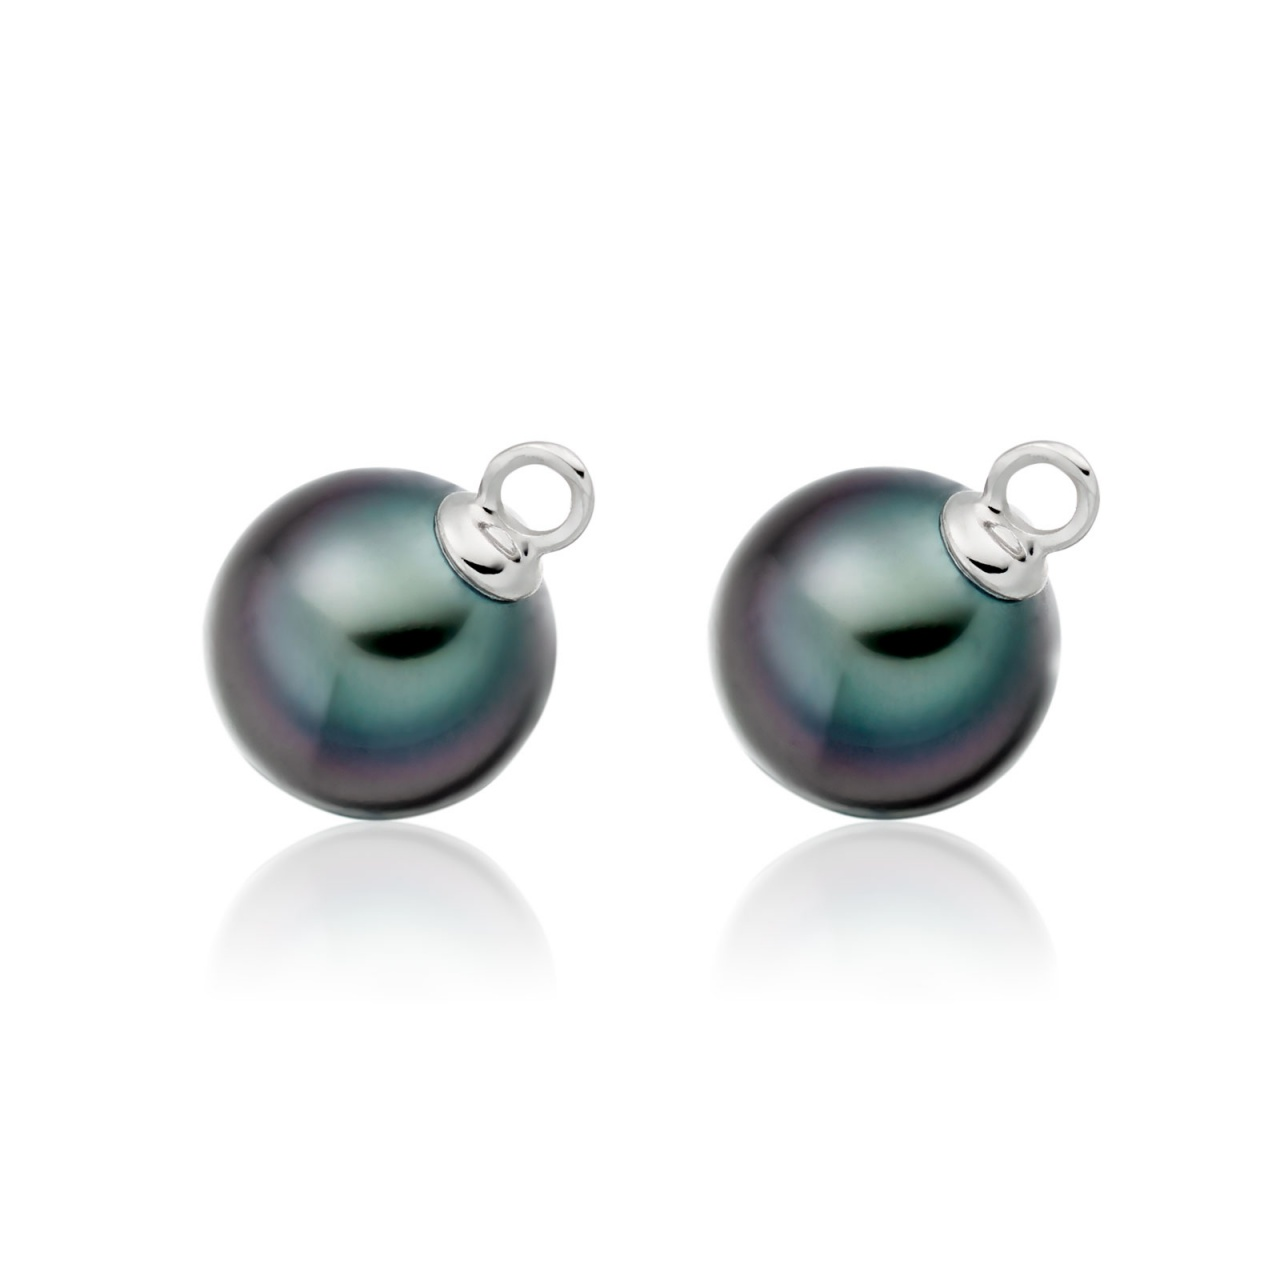 Pair of Black Tahitian Pearls for White Gold Leverback Earrings-1